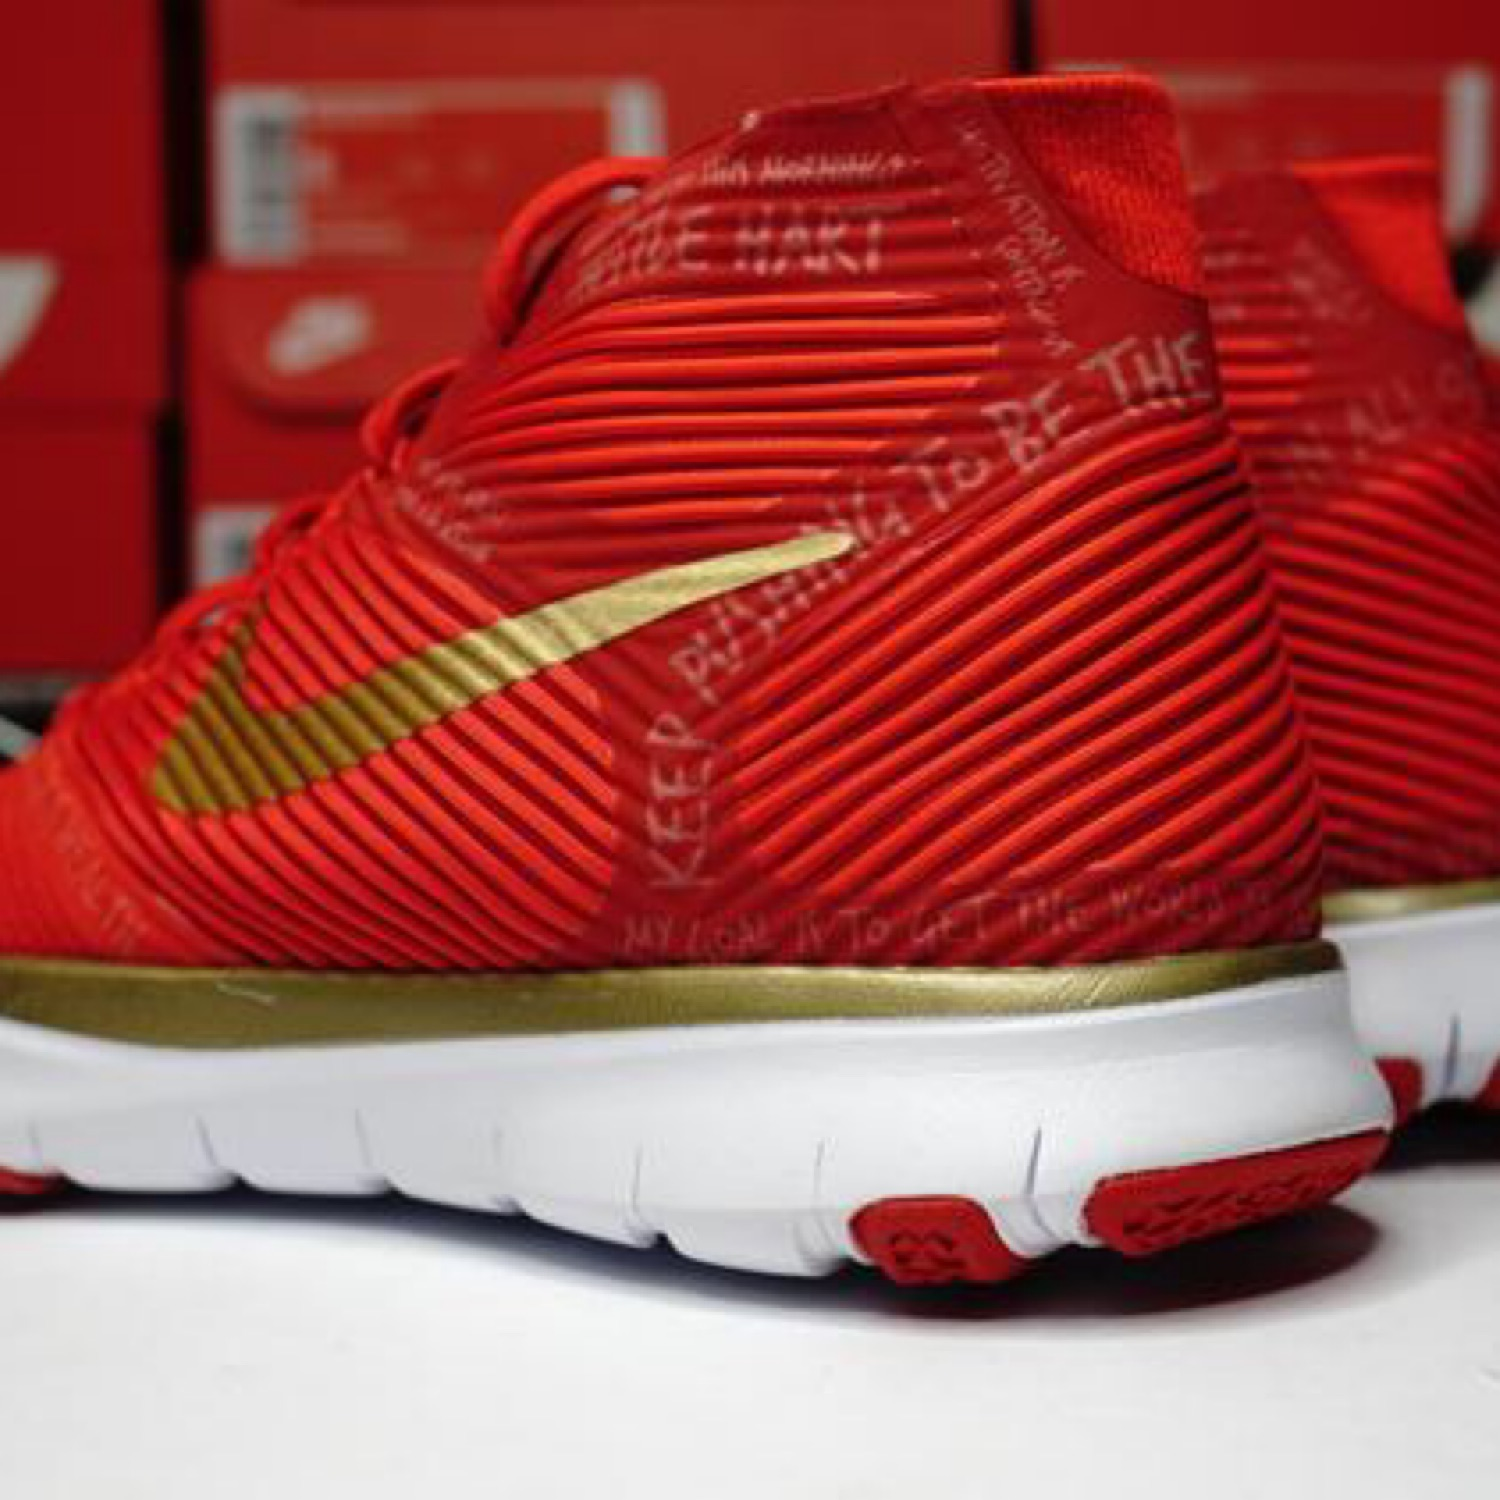 Nike Free Train Instinct Hart Red Gold Size 6.5W